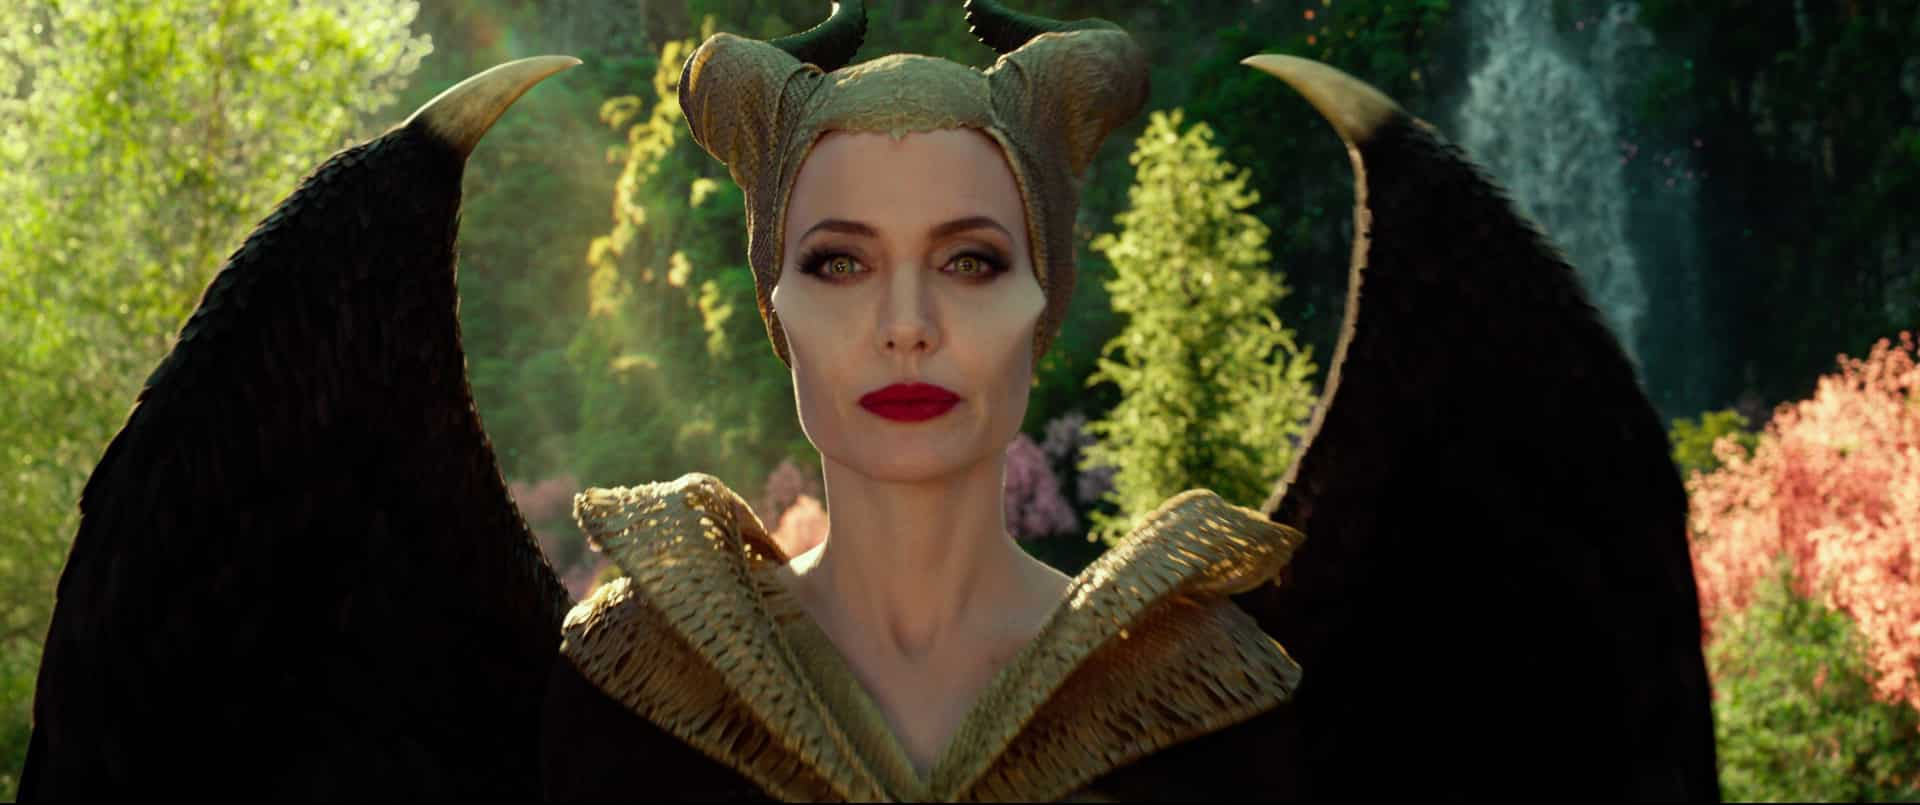 Maleficent; Cinematographe.it